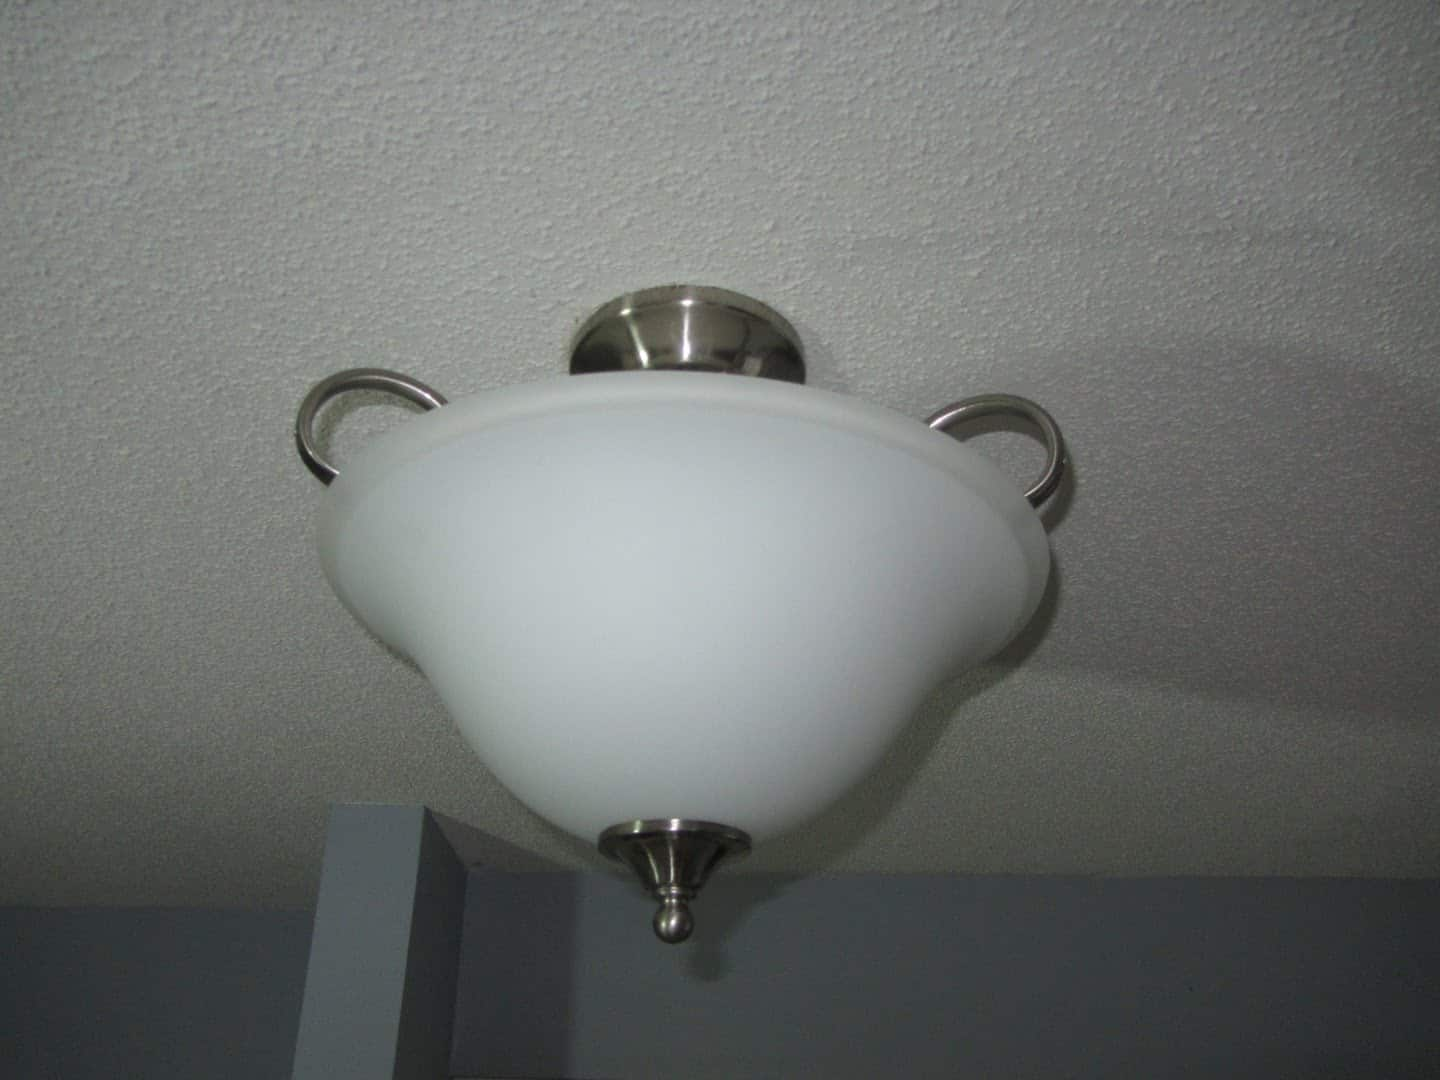 hight resolution of installing light fixture how to replace it